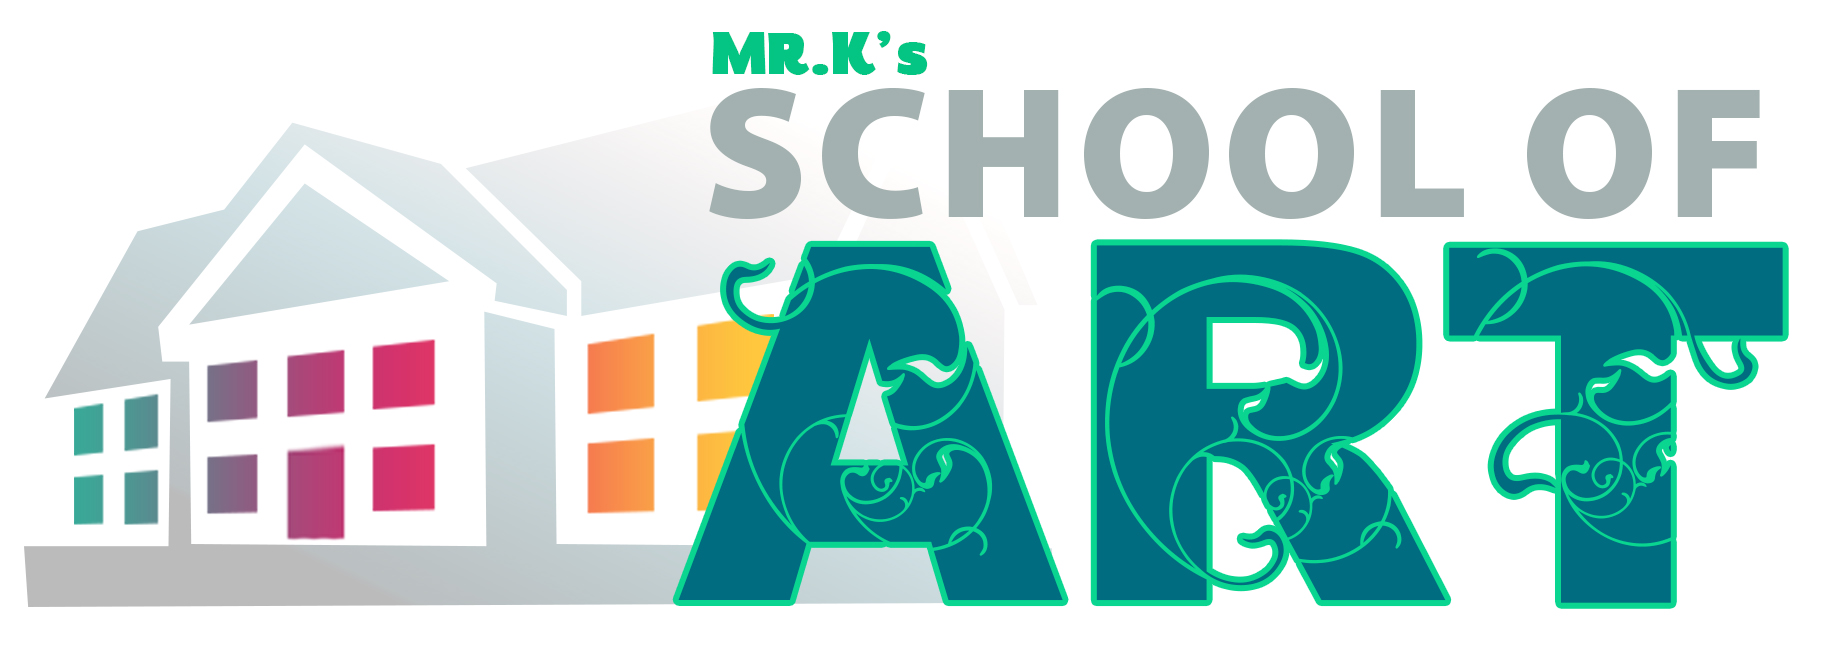 mr.k's school of art - art classes